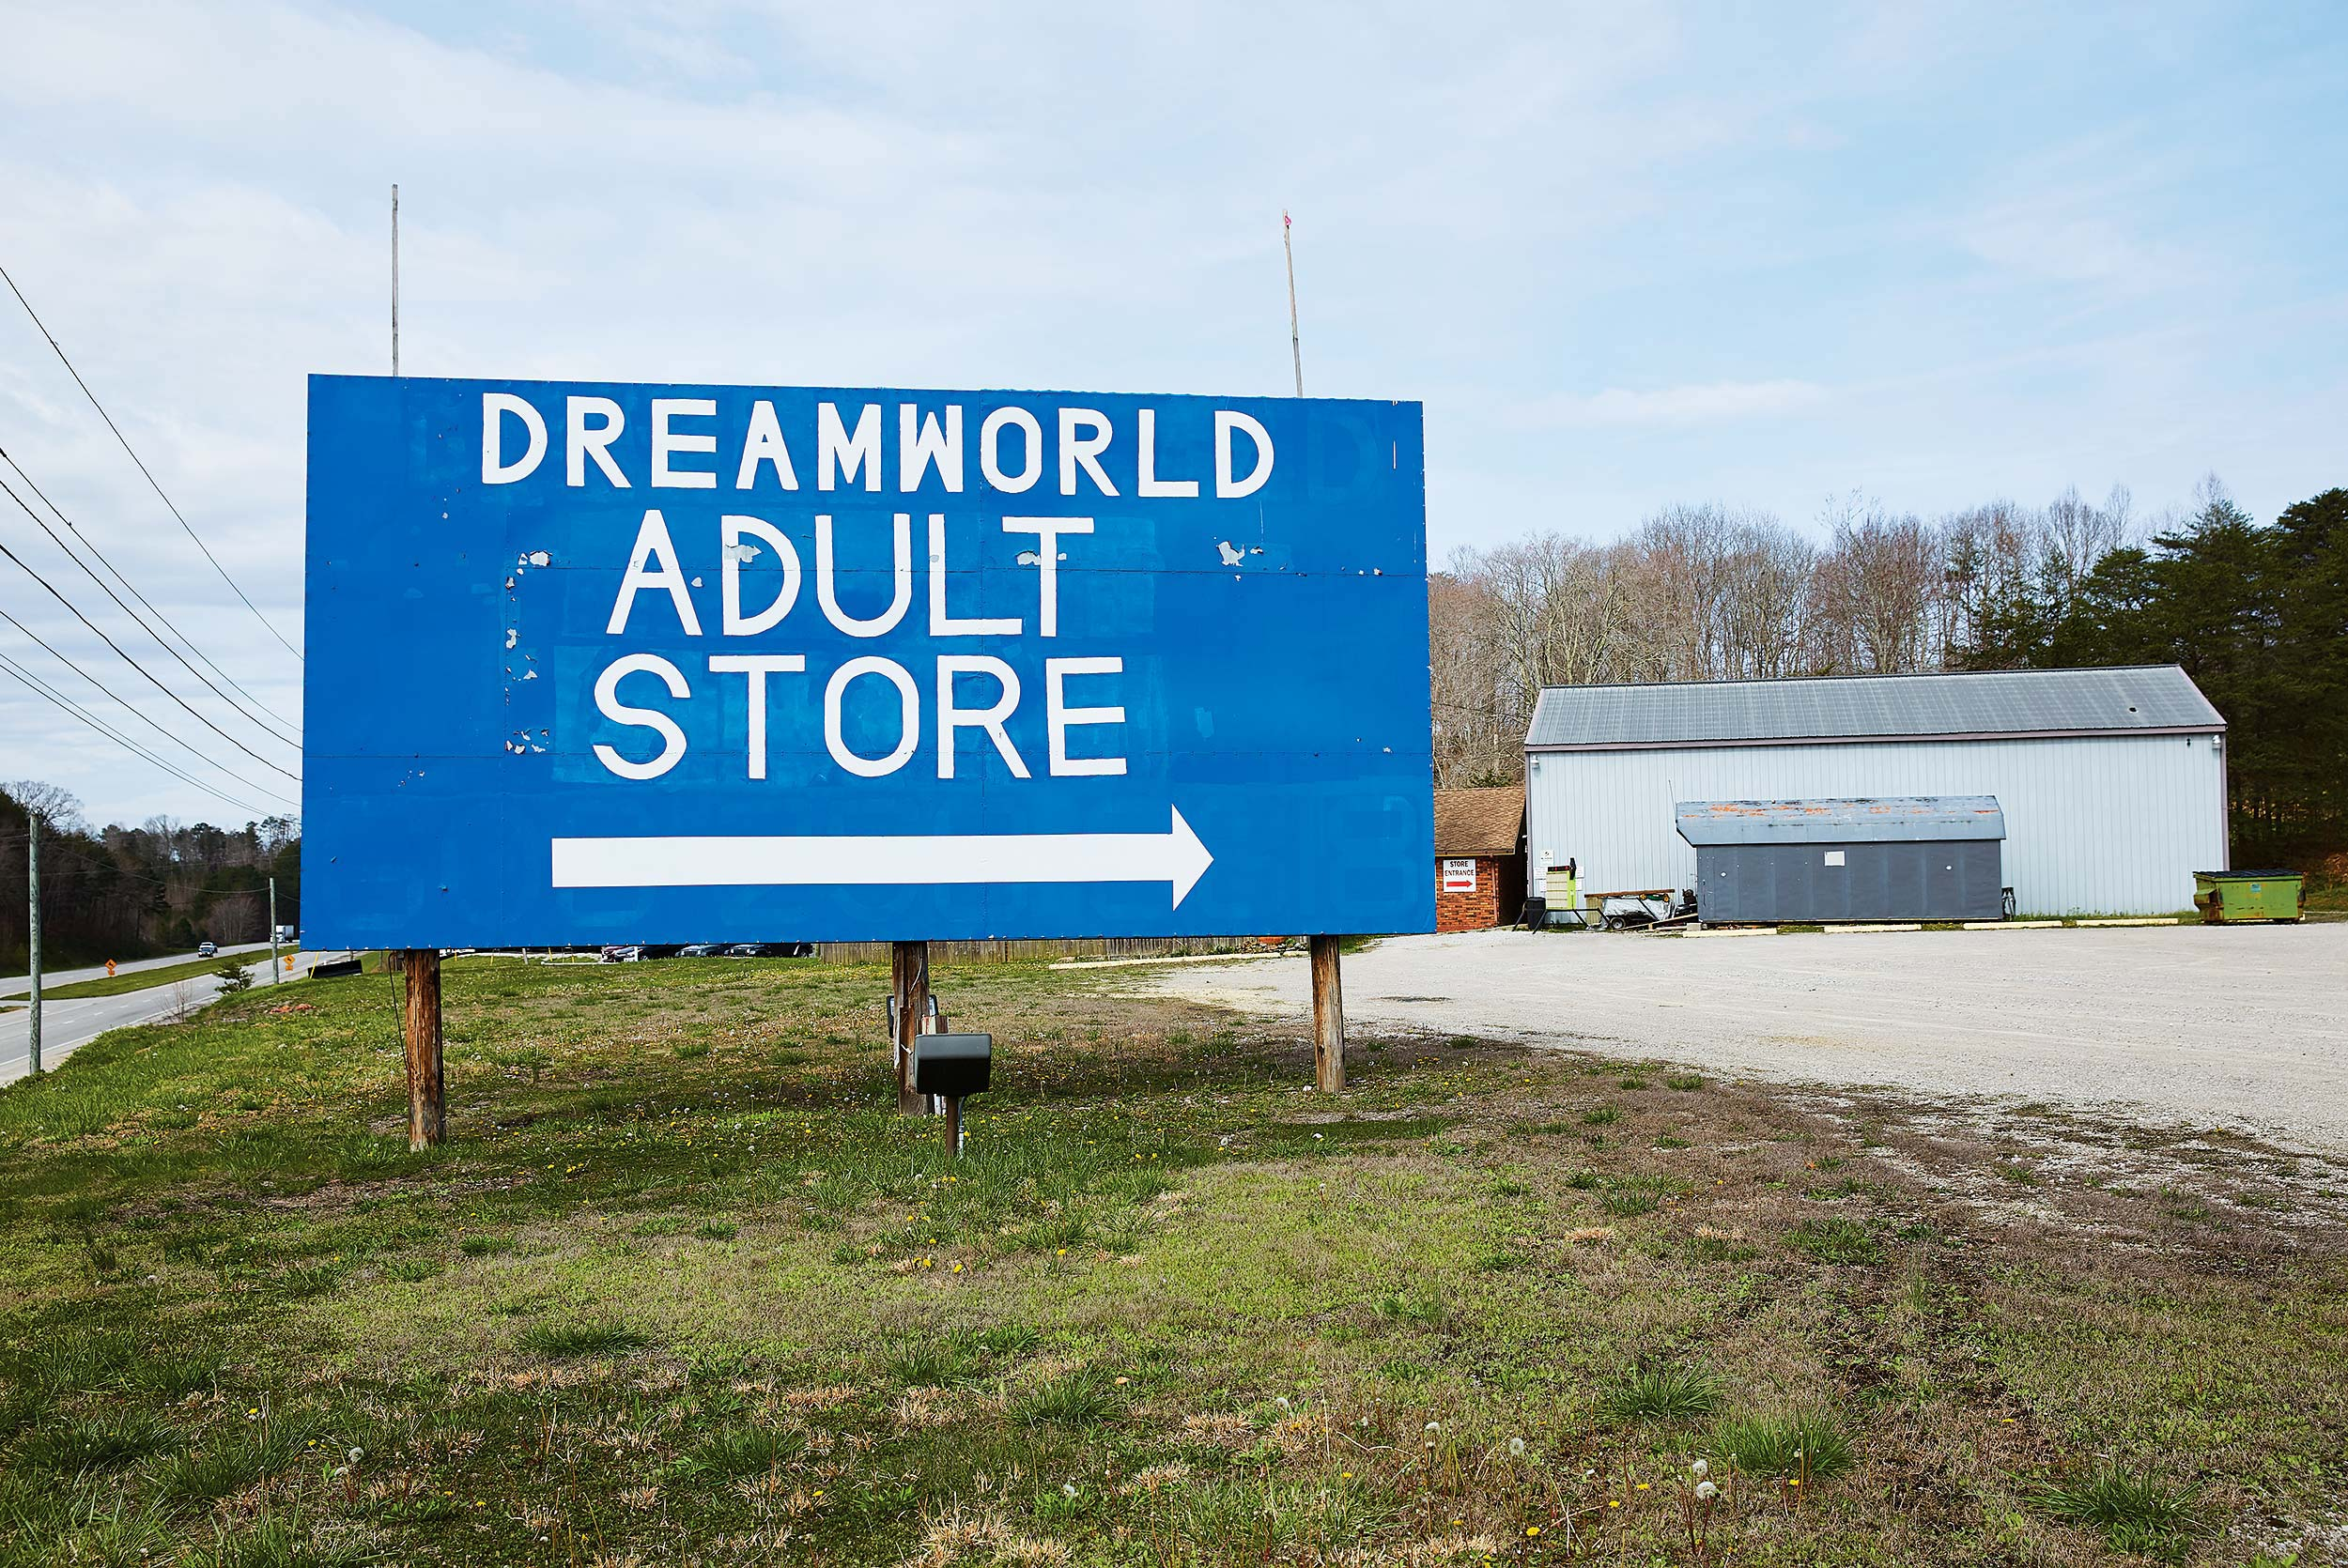 DREAMWORLDGRAY, KENTUCKY